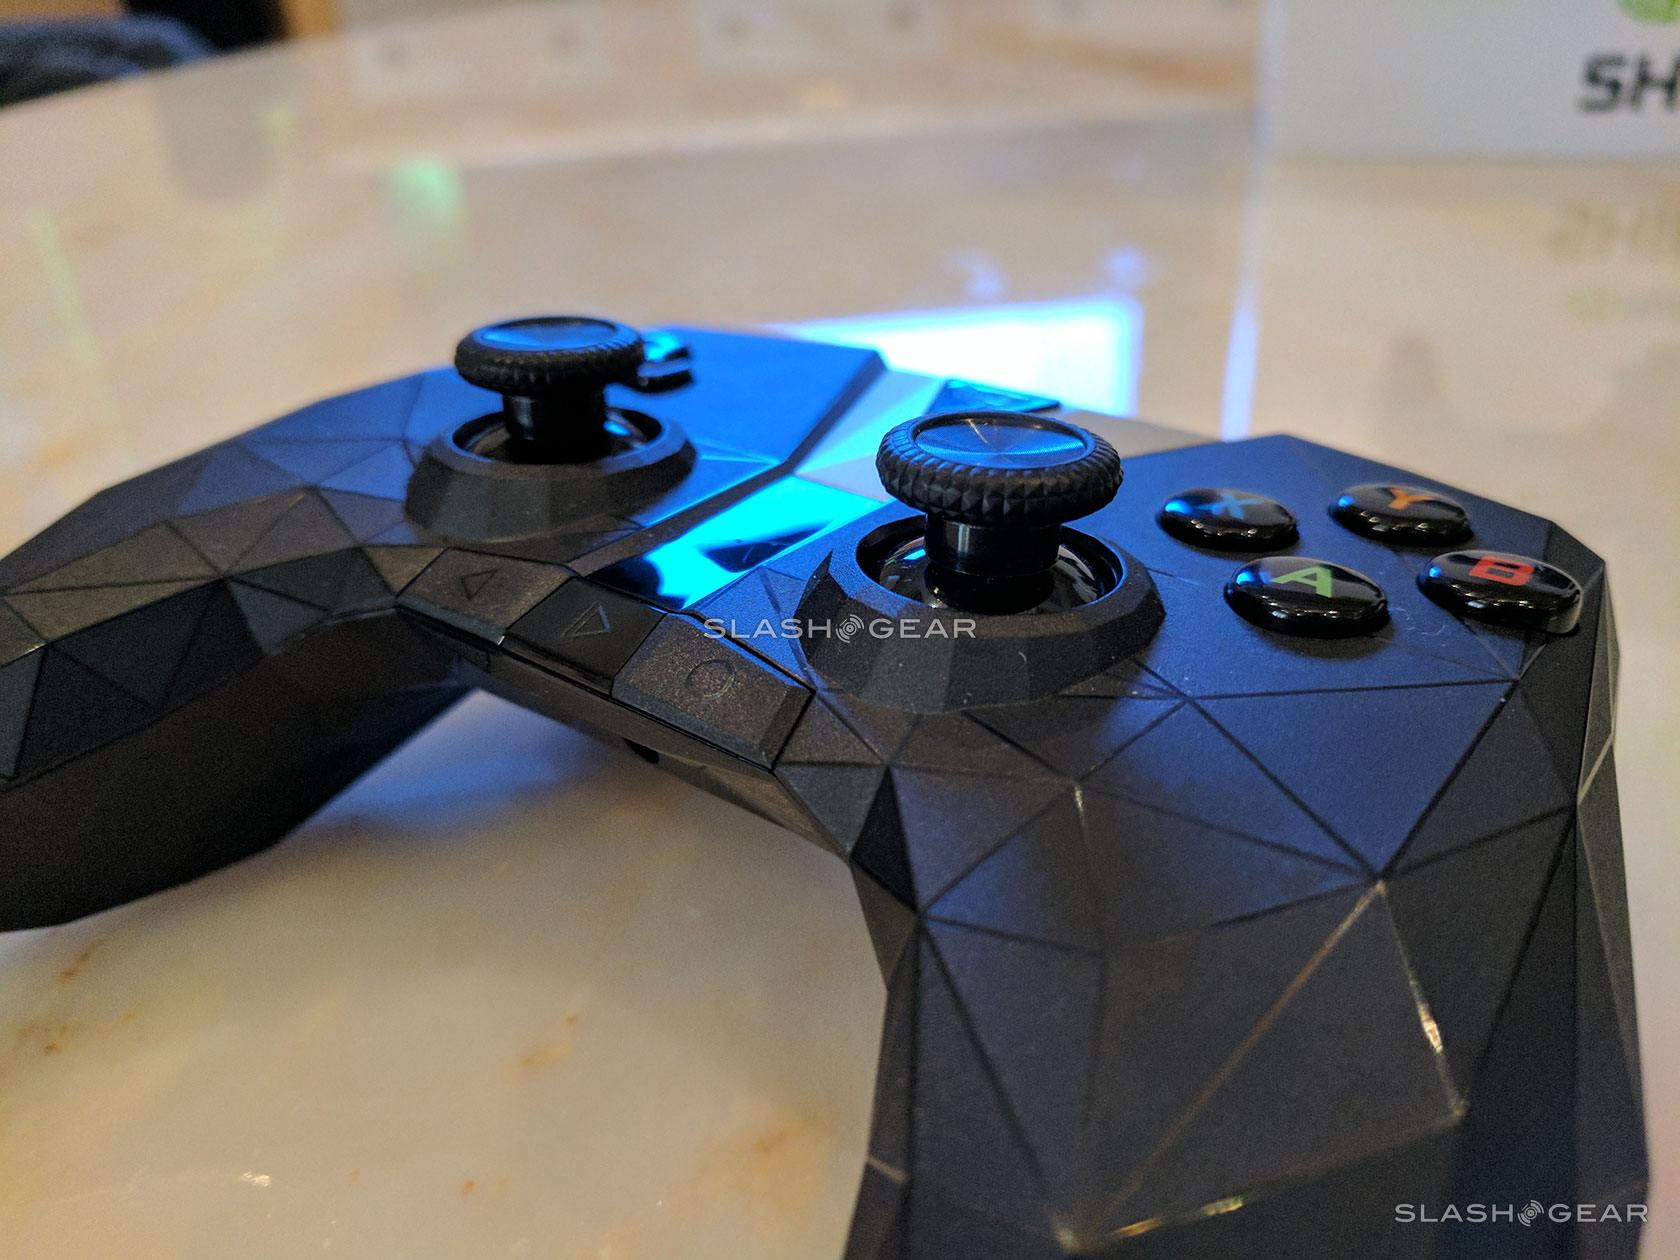 New NVIDIA SHIELD TV hands-on at CES 2017: all about that